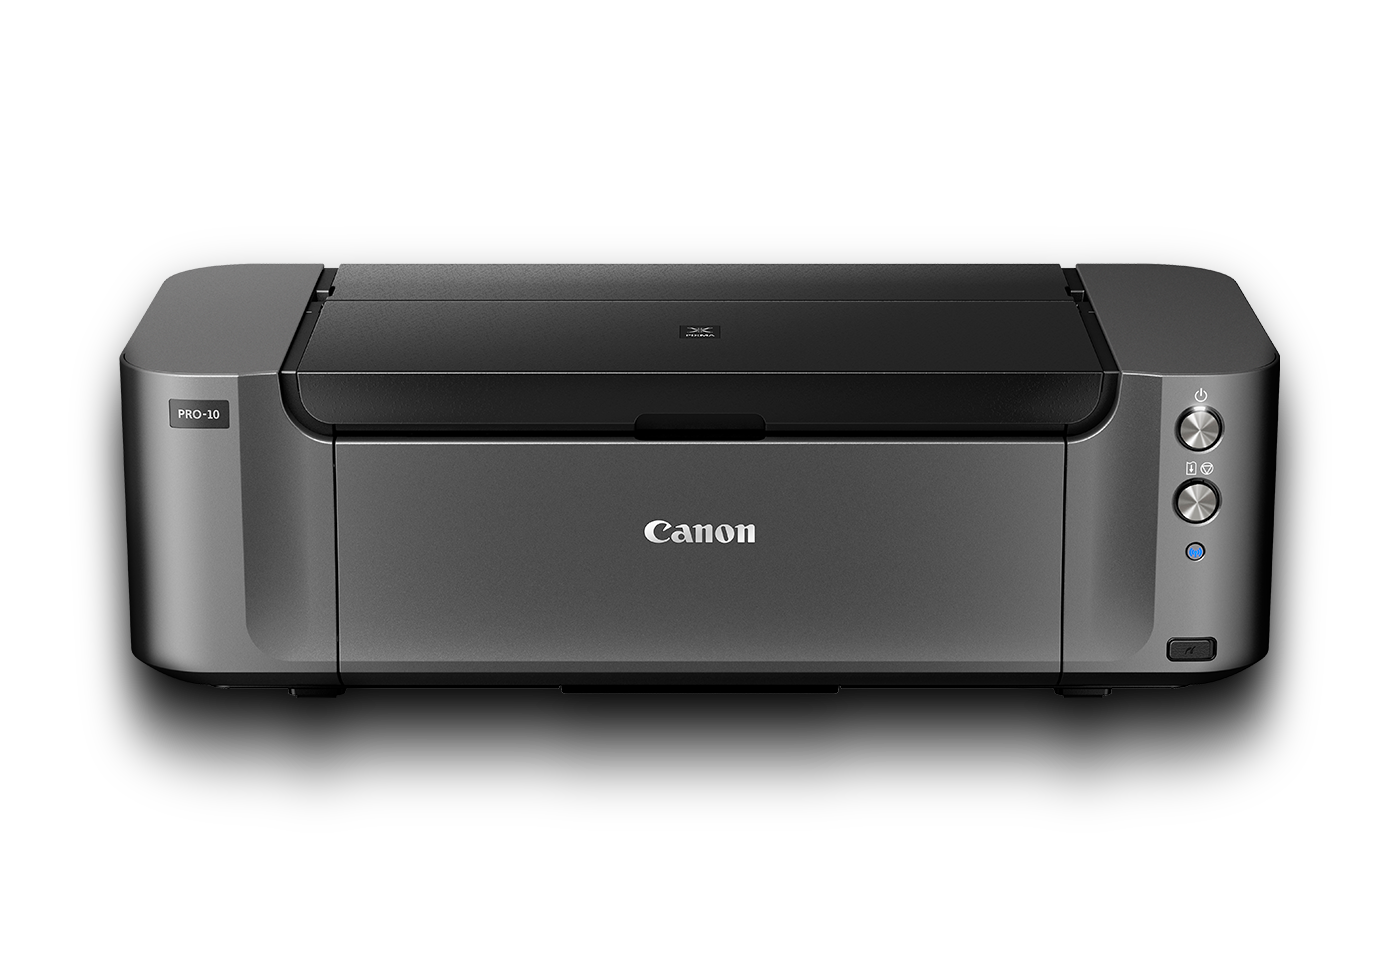 pixma pro-10 black front with shadow